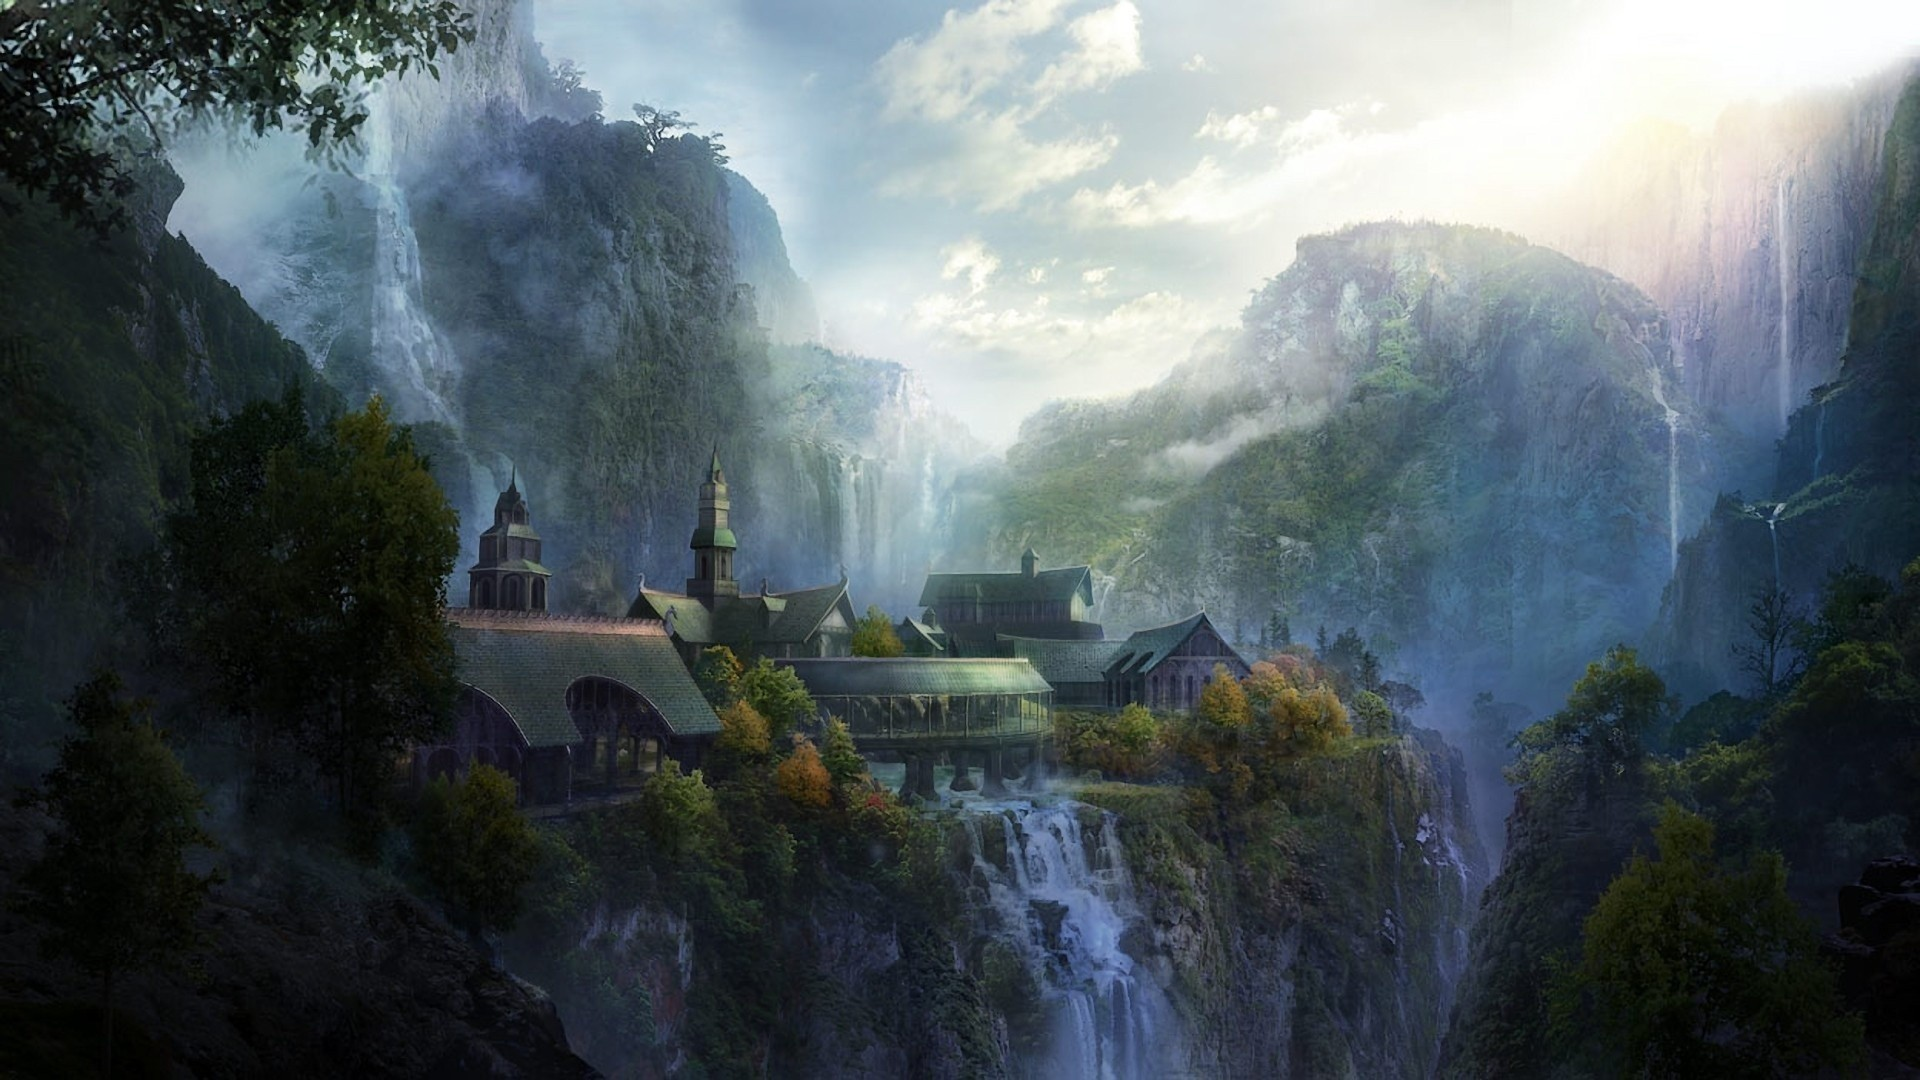 landscapes, nature, The Lord of the Rings, artwork :: Wallpapers